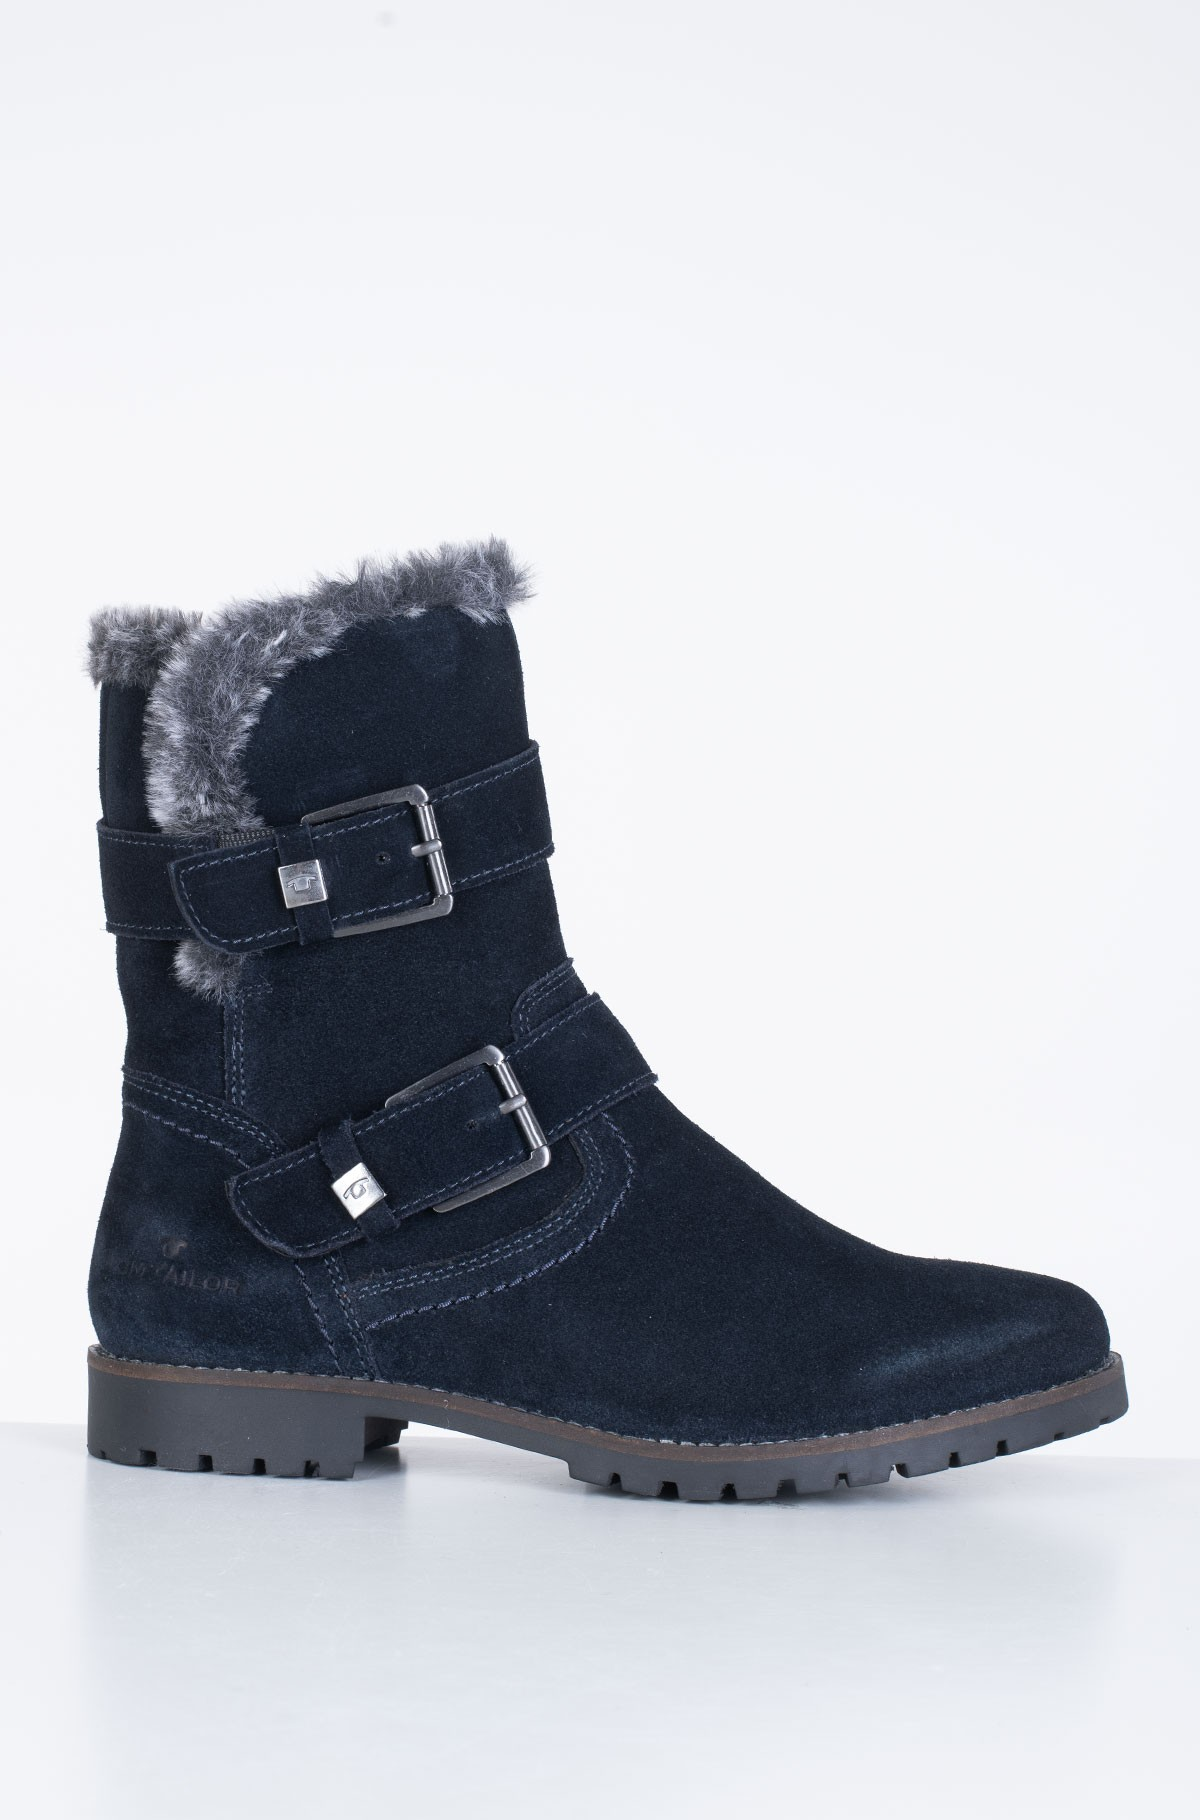 Boots 7999202-full-1